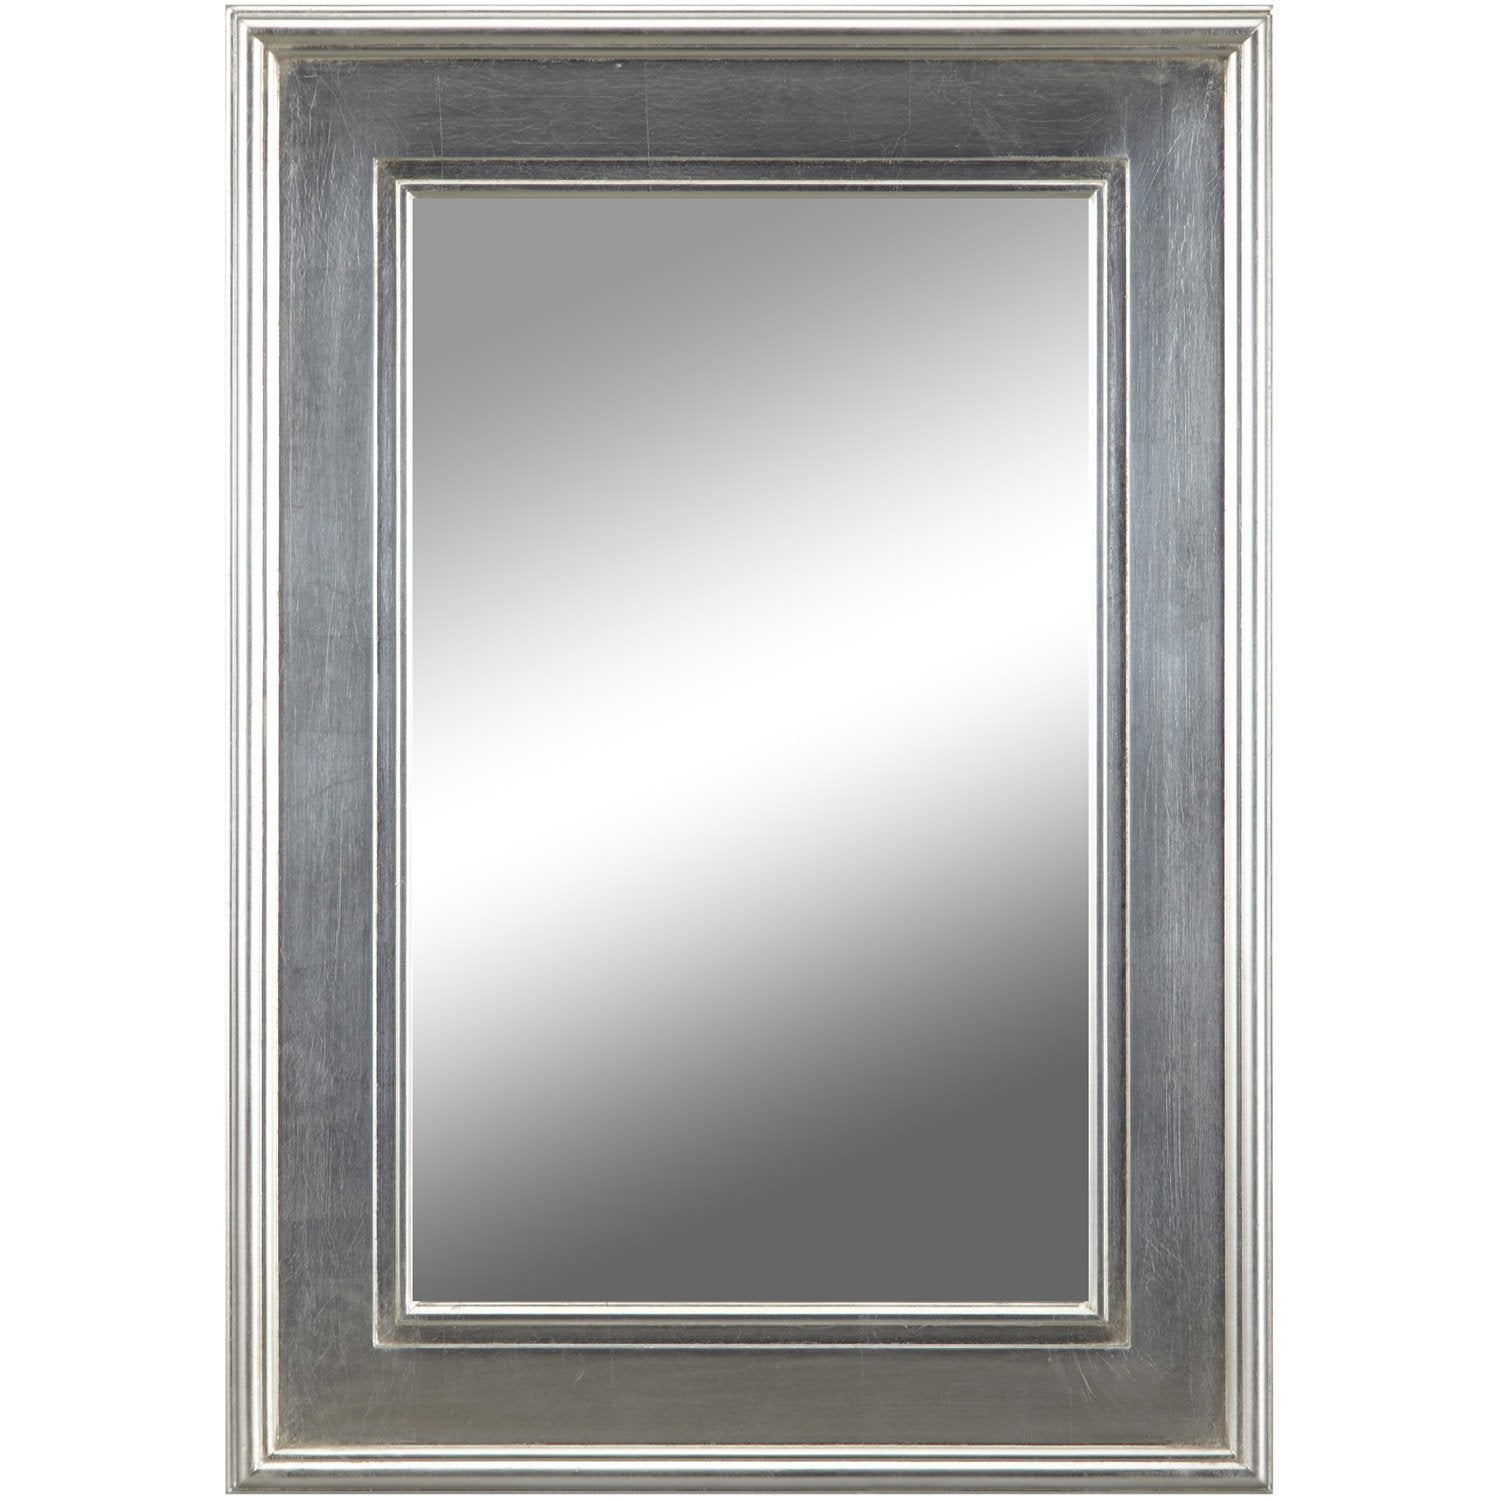 Miroir tisbury rectangle argent 50x70 cm leroy merlin for Ou trouver un miroir